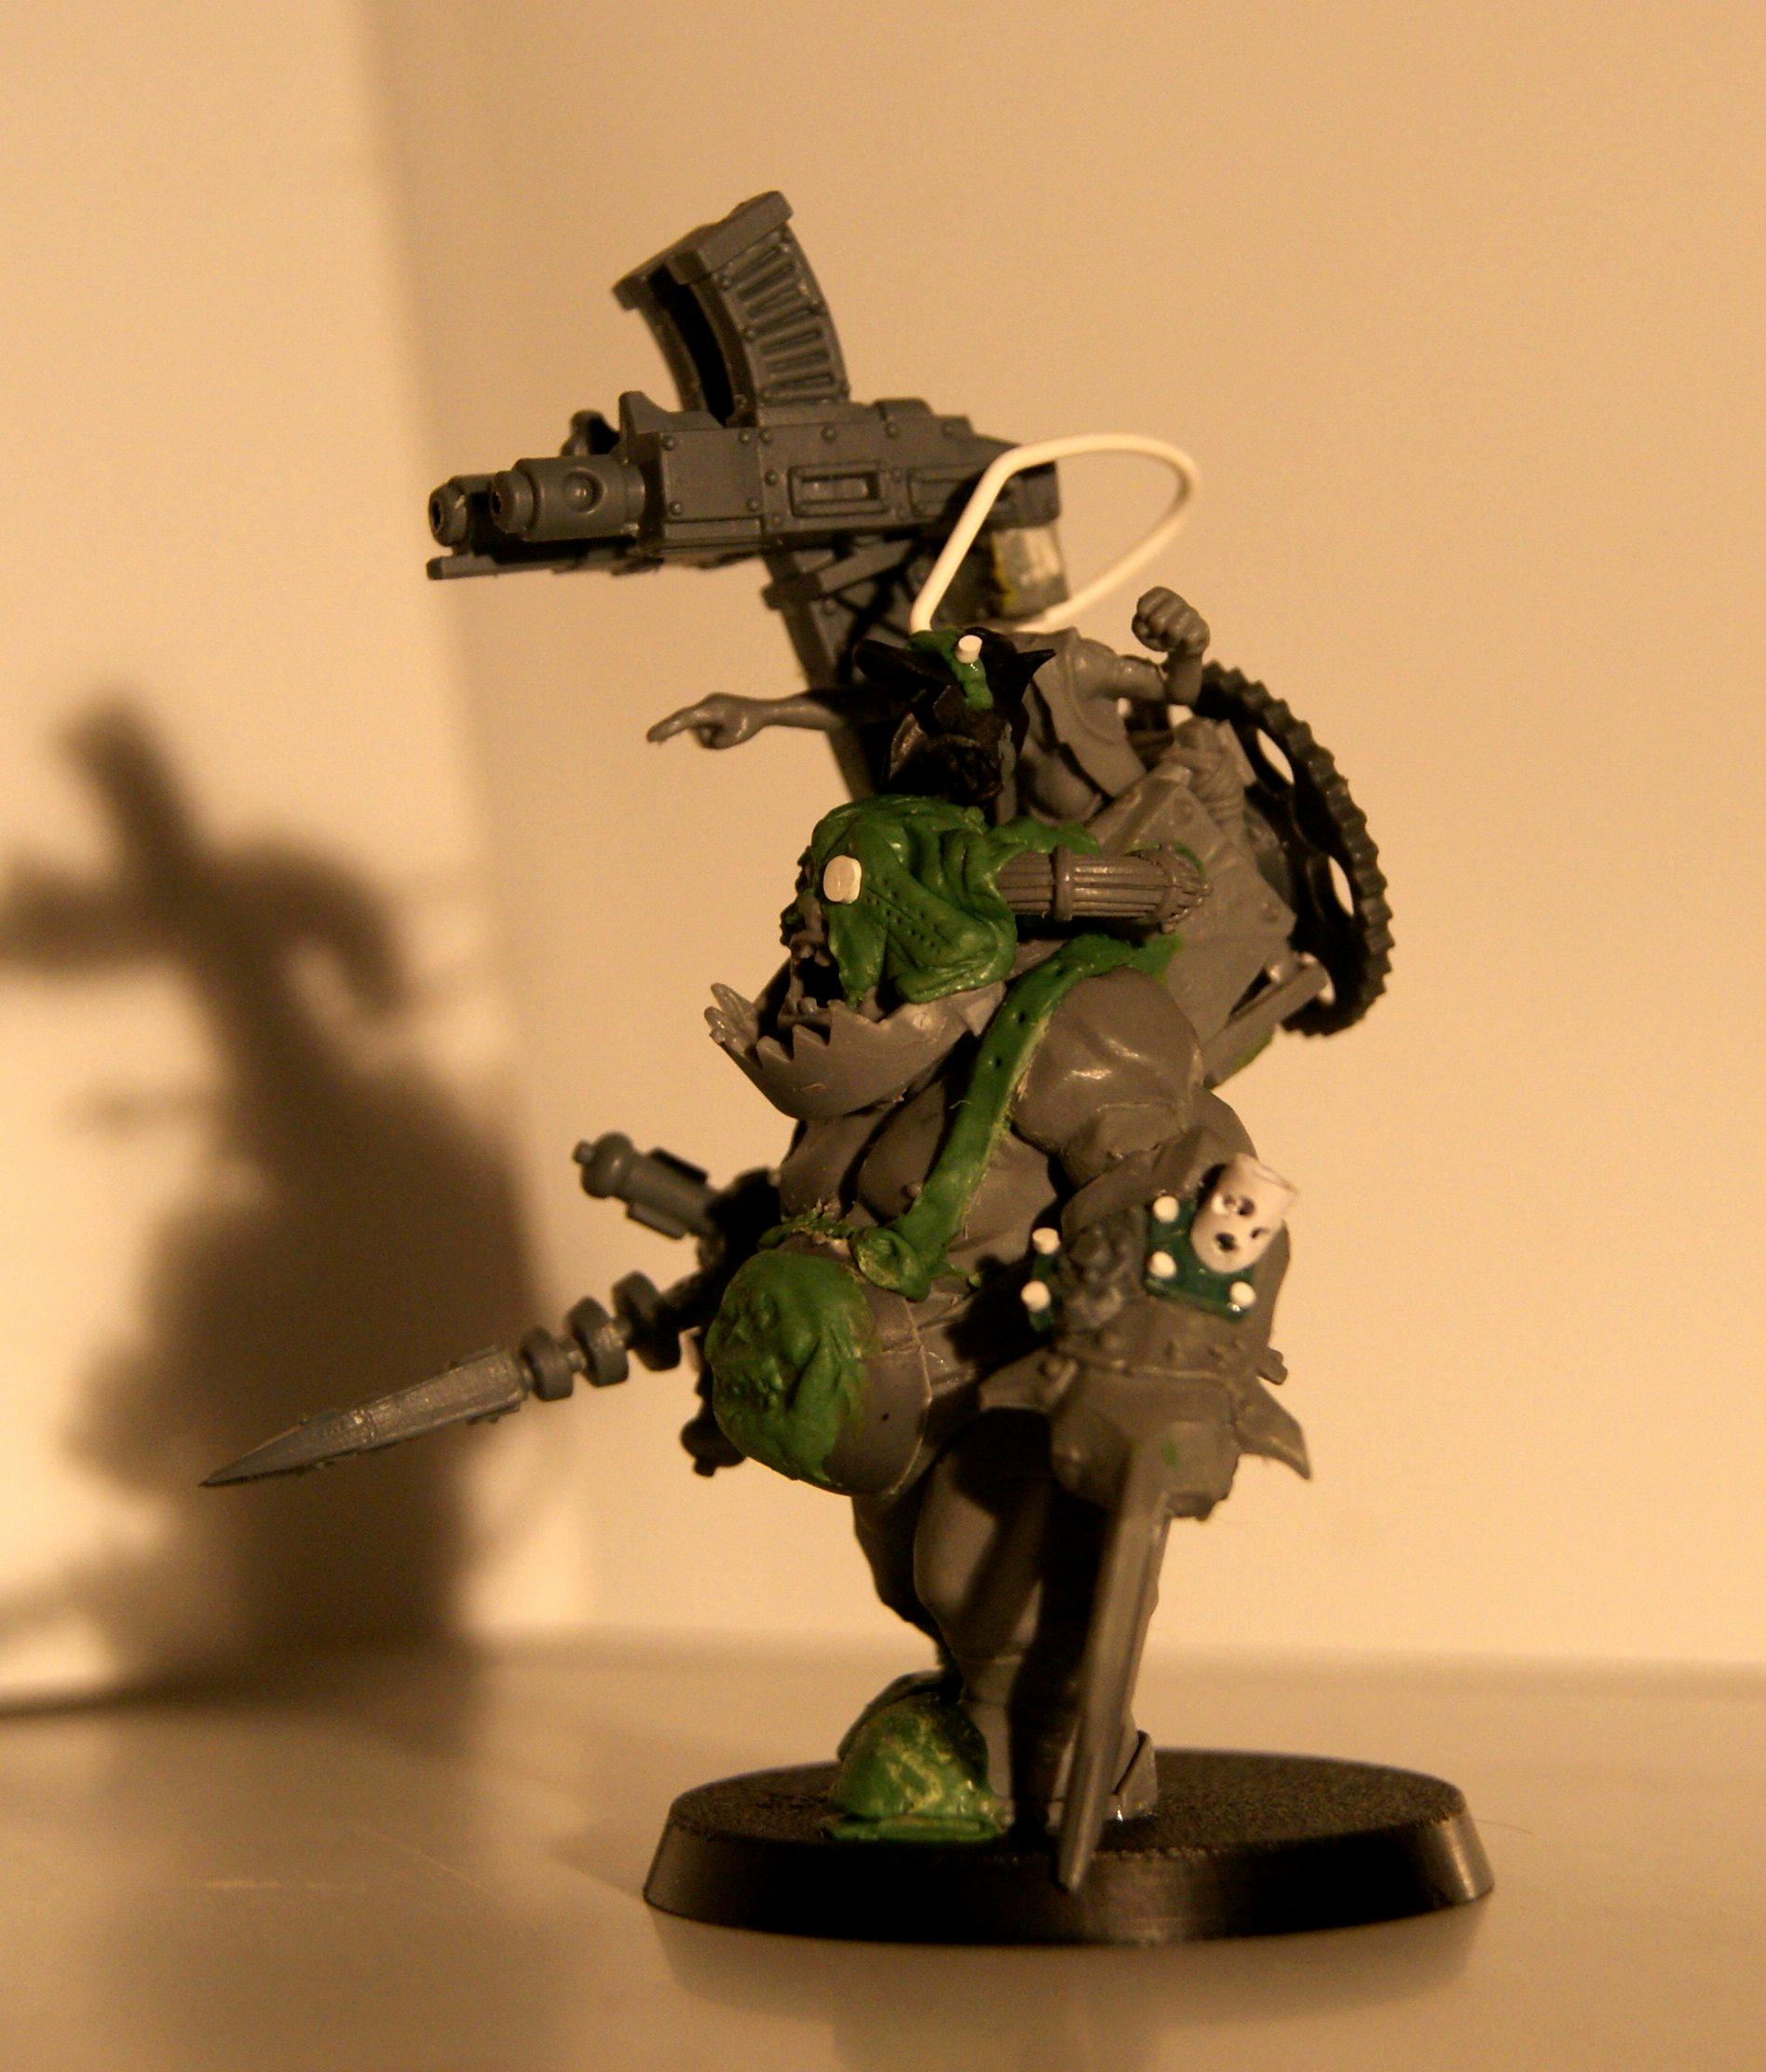 Conversion, Grot Rebellion, Grot Rebels, Grots, Mekboy, Orks, Warhammer 40,000